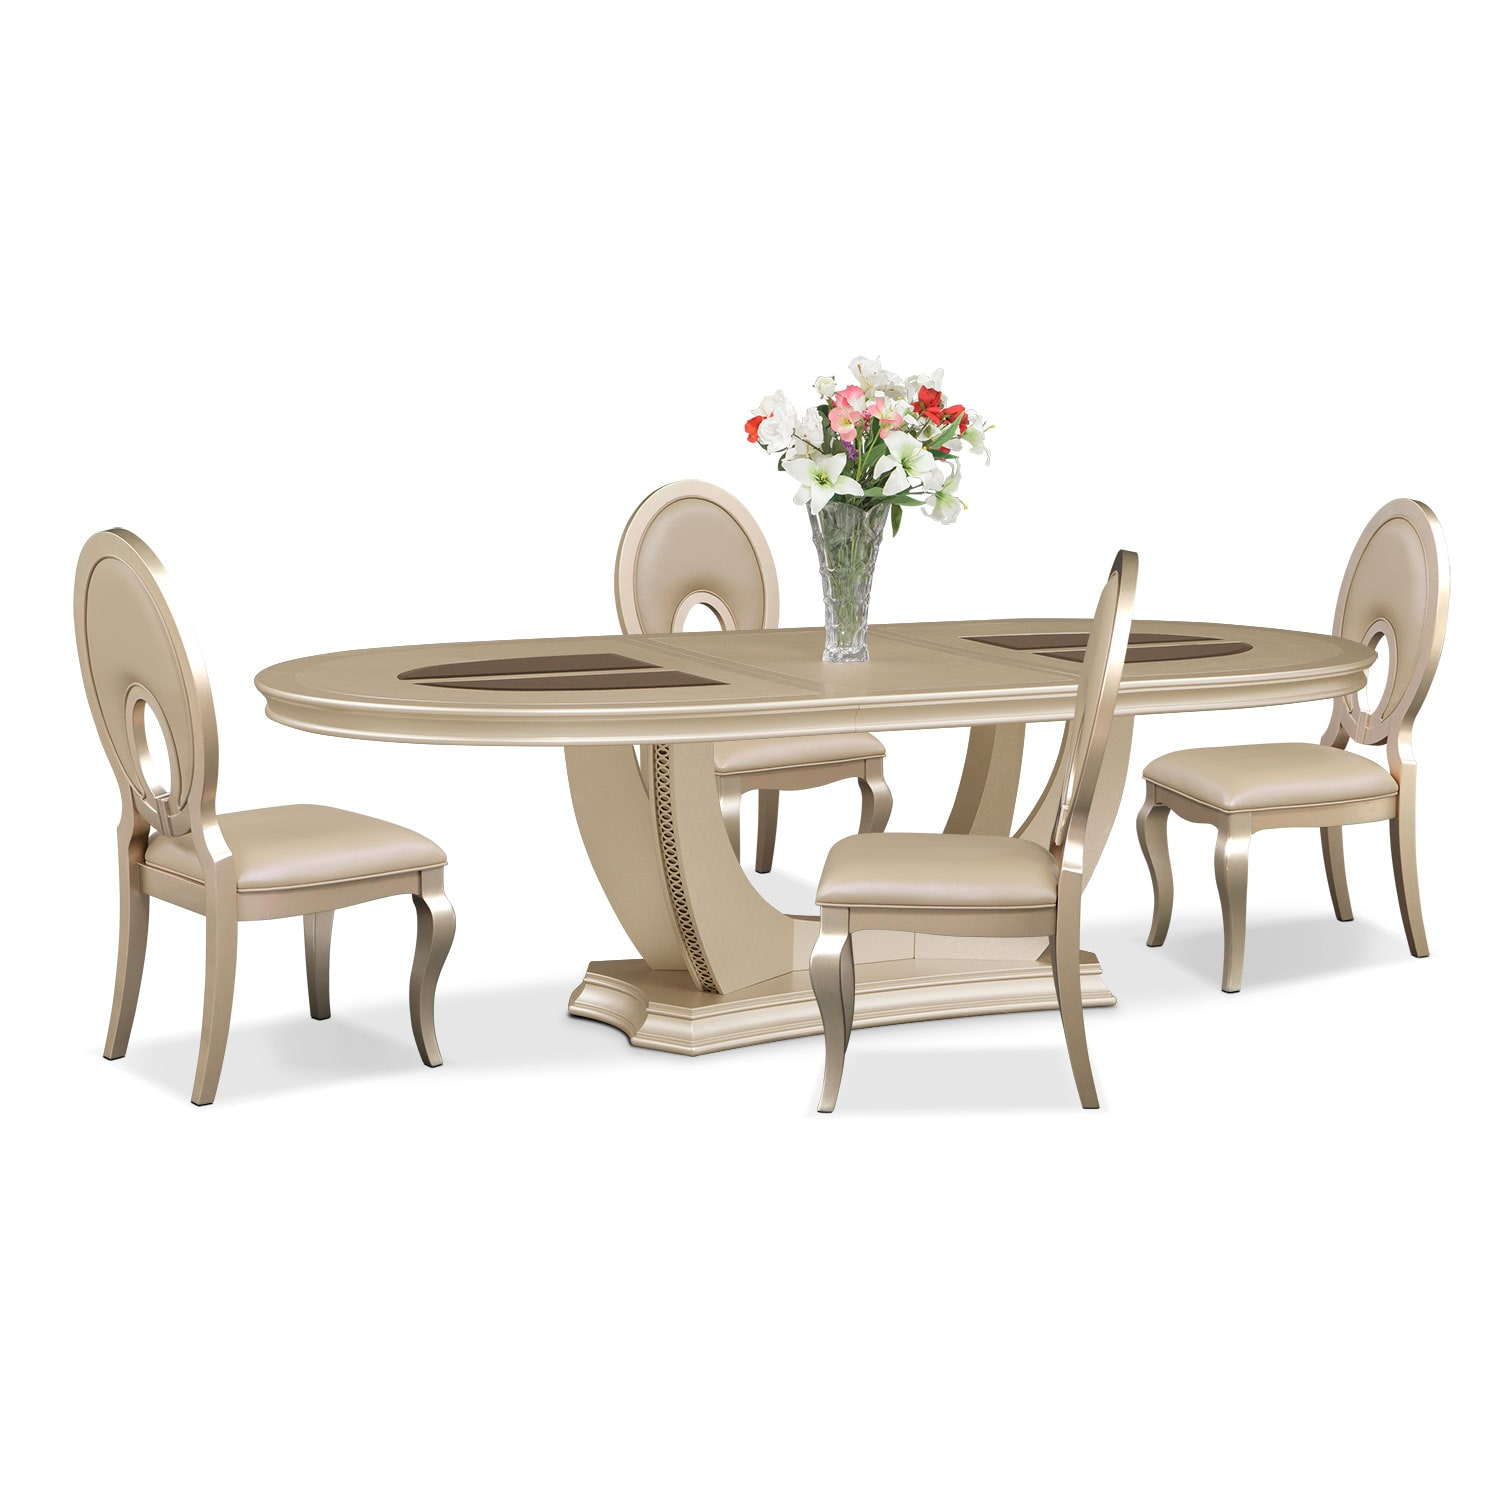 Dining Room Furniture - Allegro Oval Table and 4 Chairs - Platinum